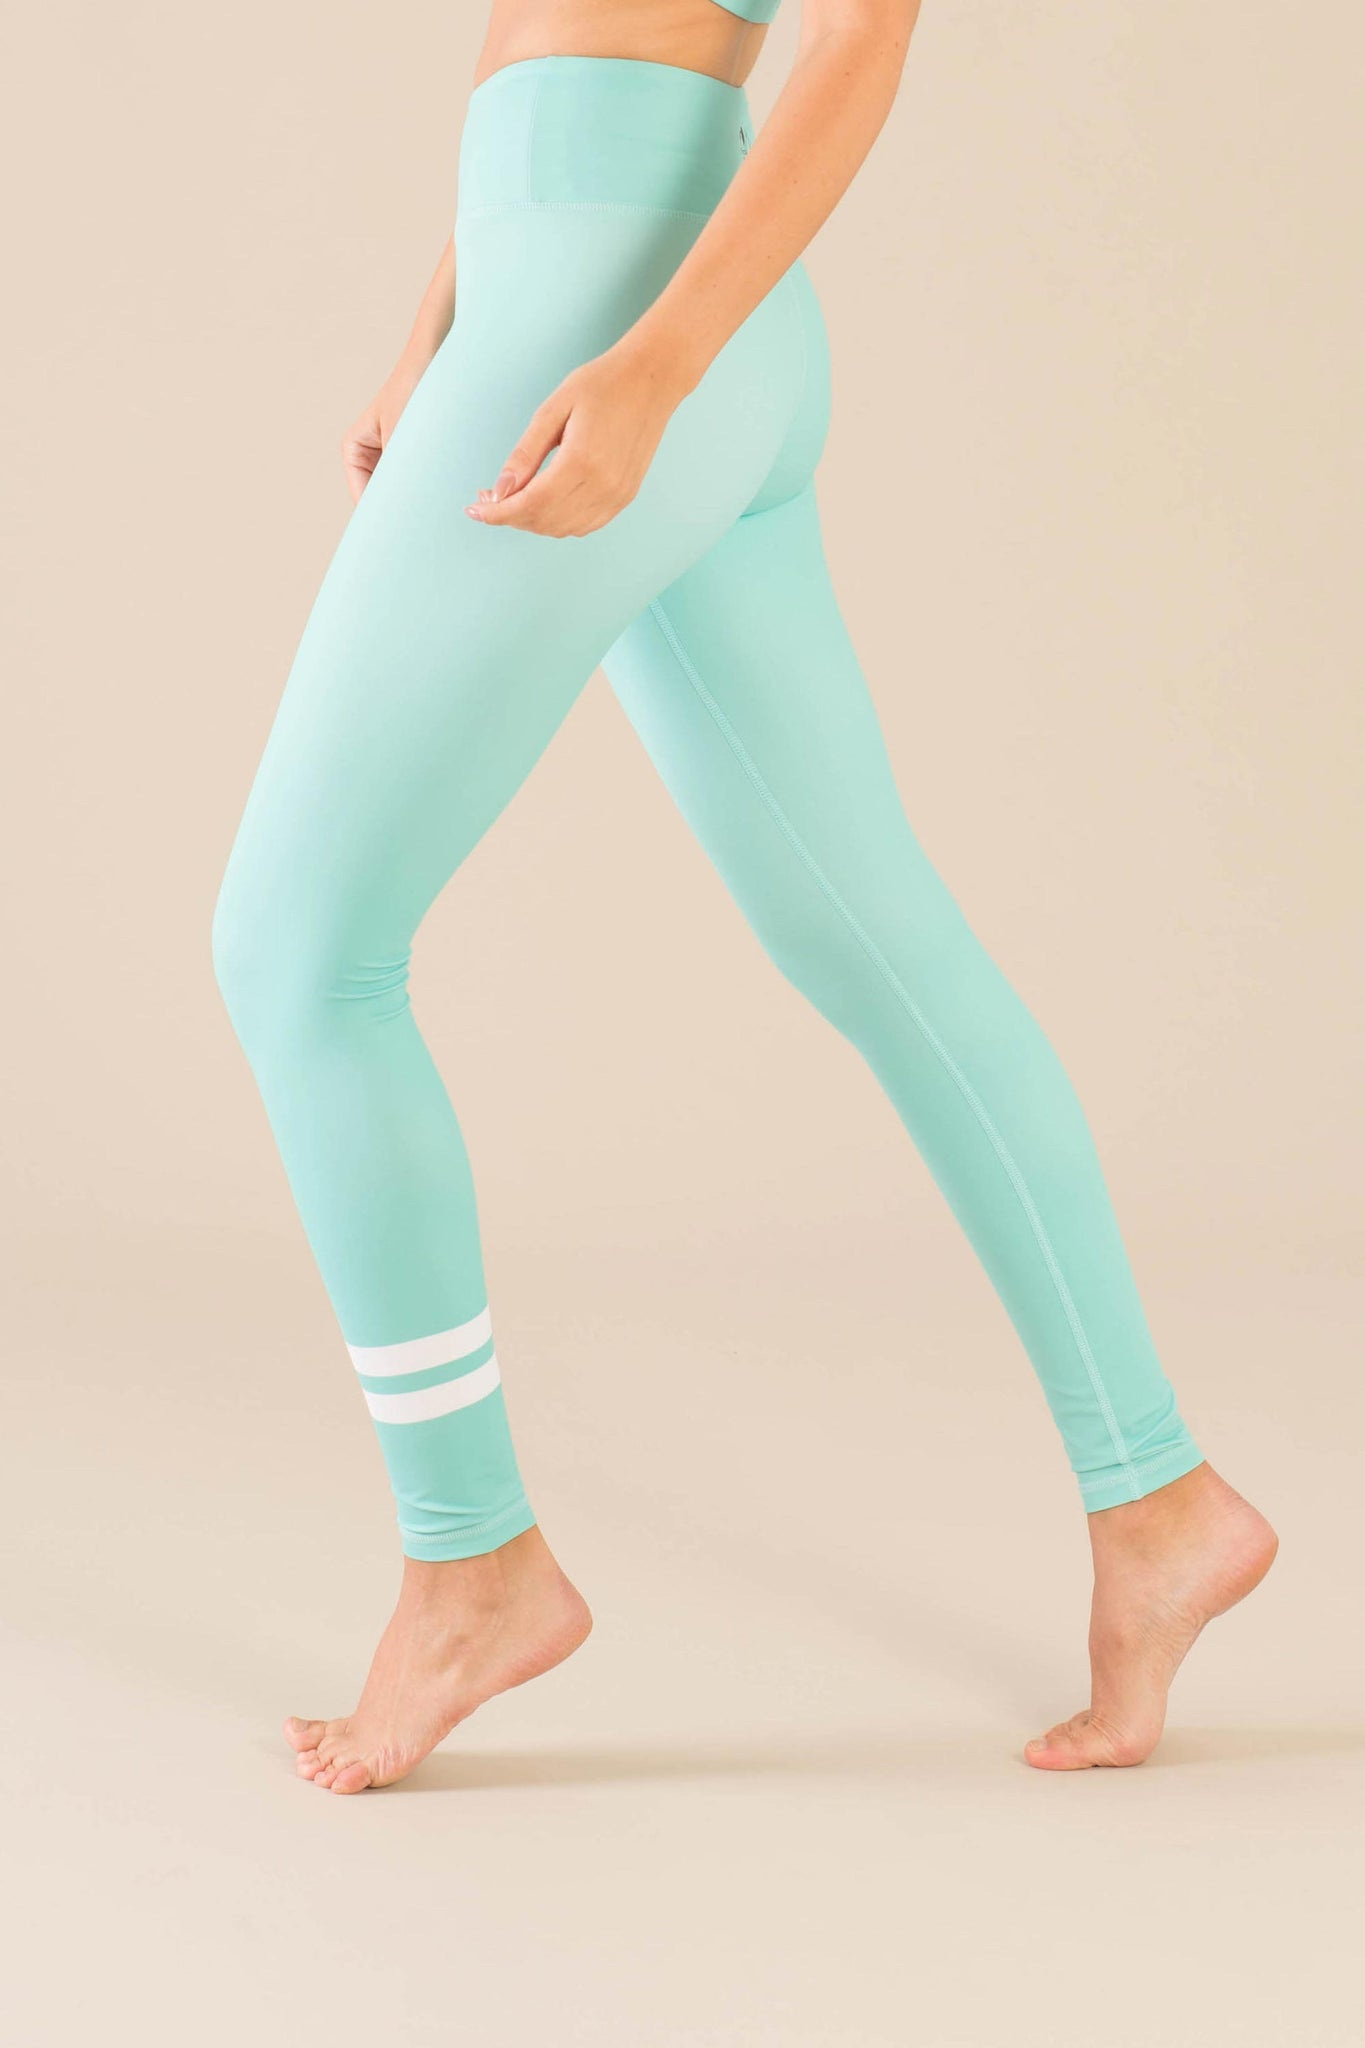 Venus Flexi Pants